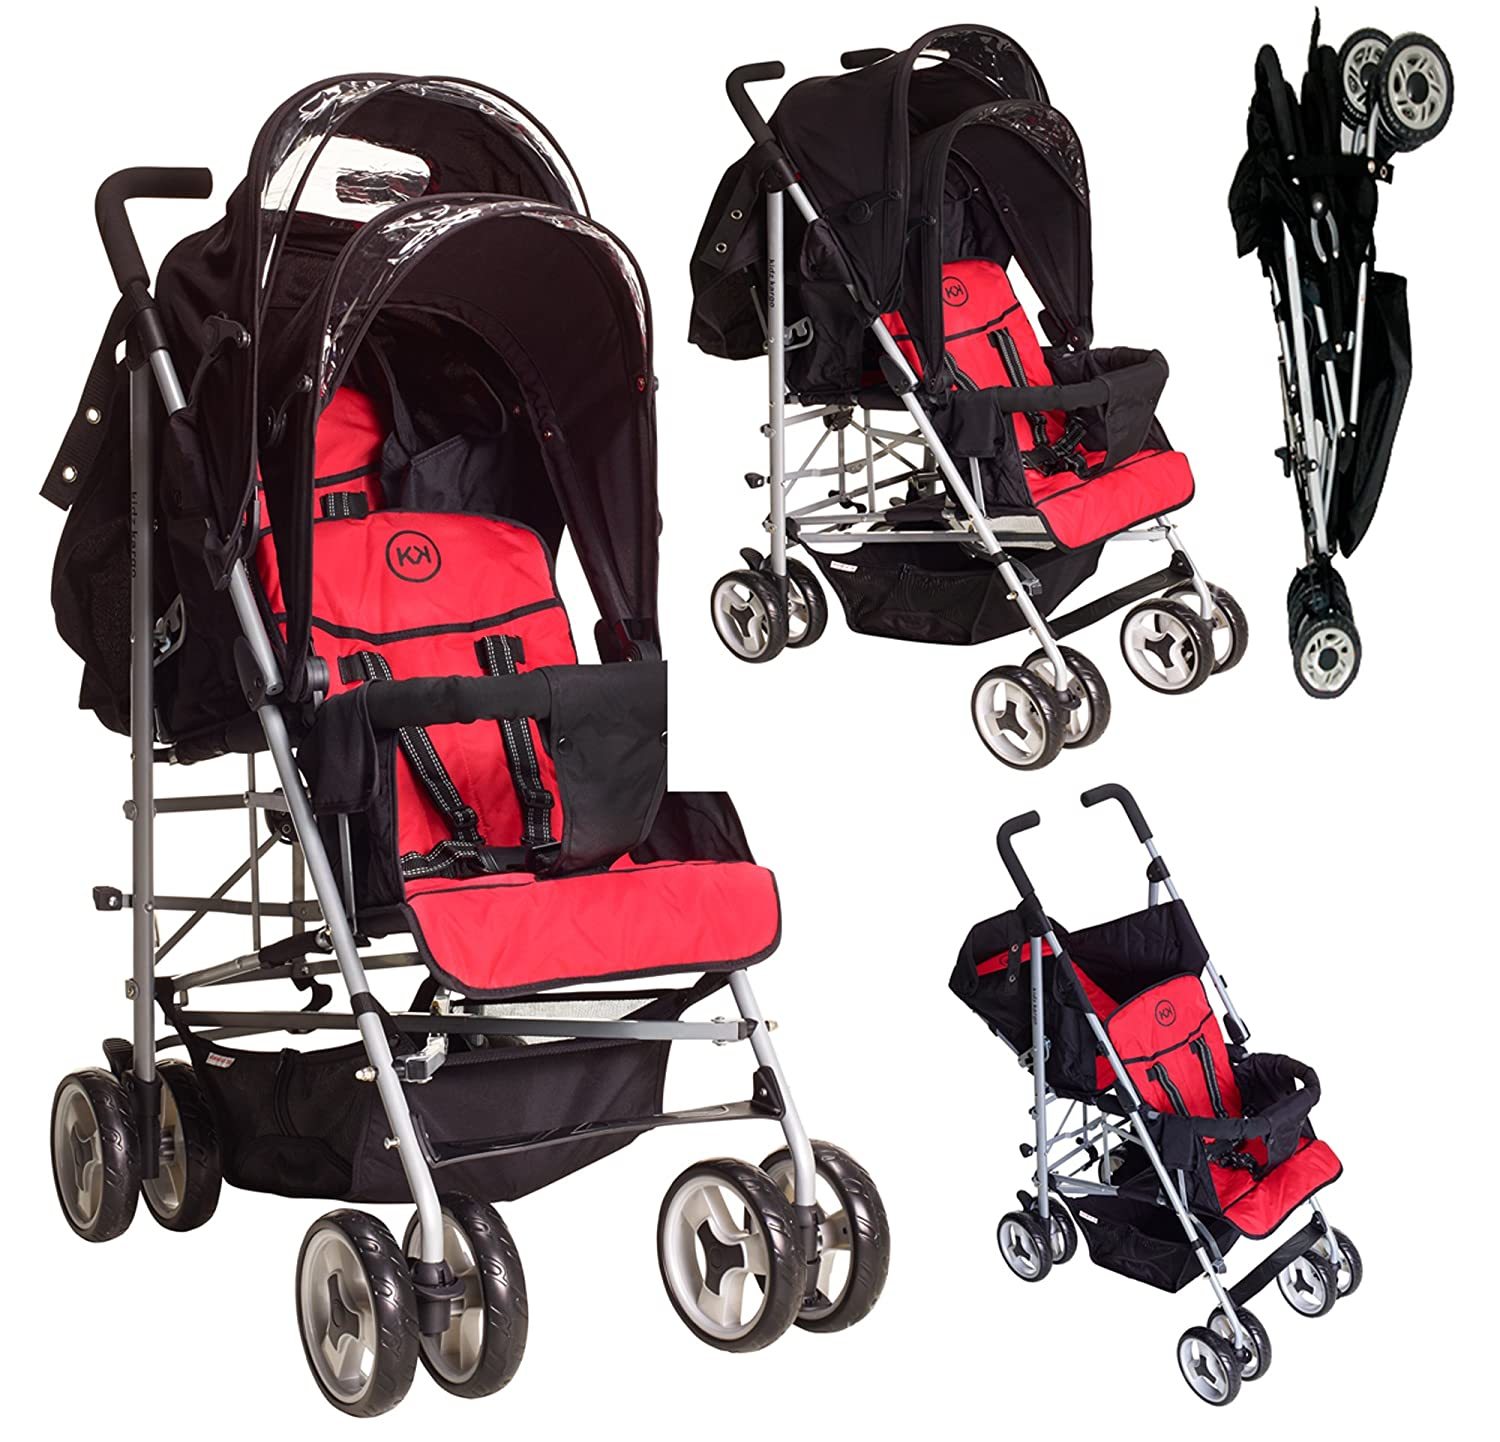 Duo Double Twin Tandem Pushchair by Kids Kargo 2 seat units fully reclining lie back at the rear Suitable for newborn or up to 33lb 15kg front seat from